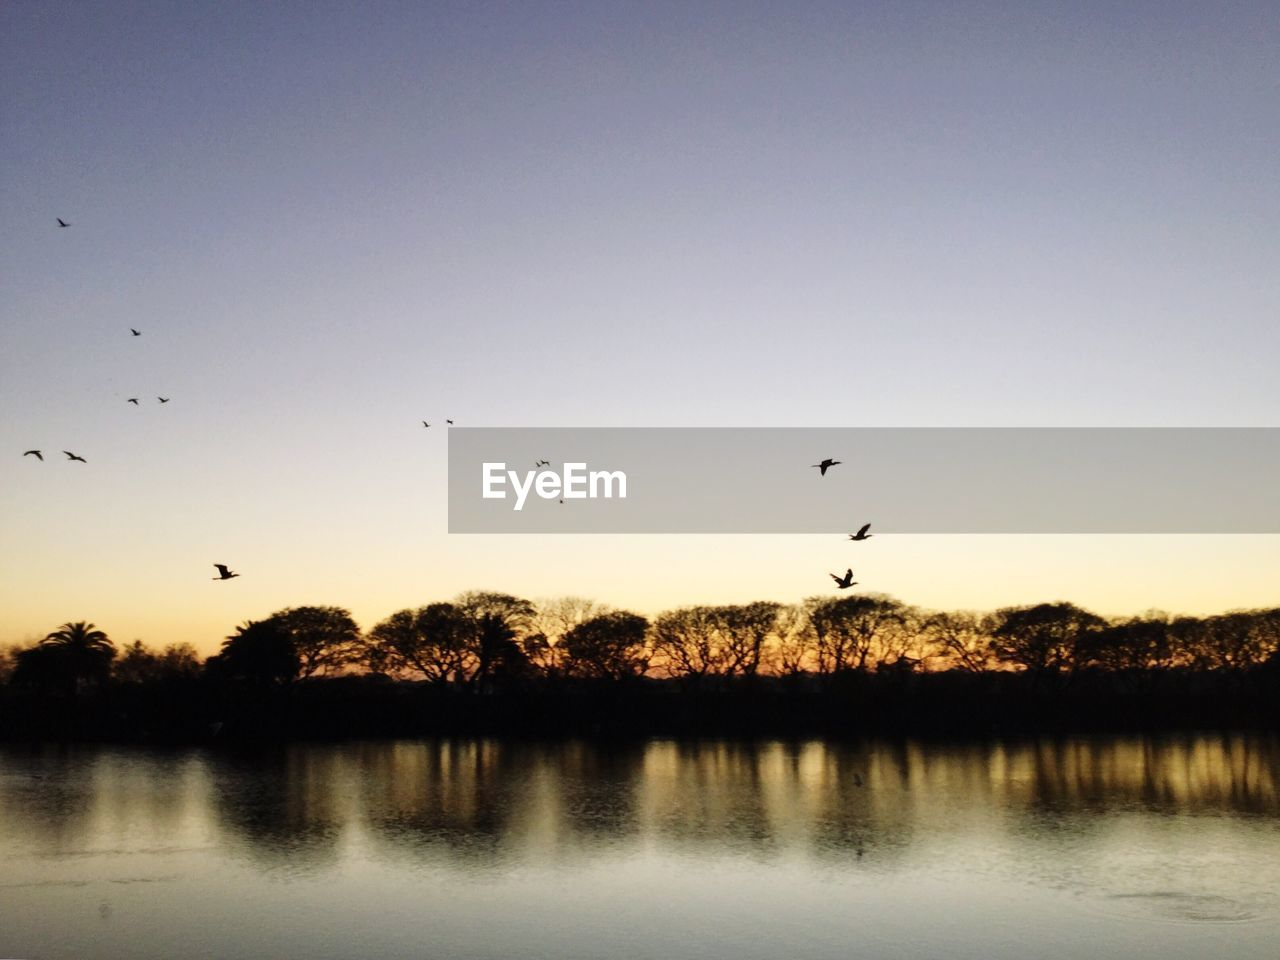 flying, bird, sunset, animals in the wild, mid-air, animal themes, silhouette, nature, large group of animals, beauty in nature, reflection, animal wildlife, flock of birds, water, scenics, wildlife, clear sky, lake, outdoors, tree, tranquil scene, sky, tranquility, no people, spread wings, day